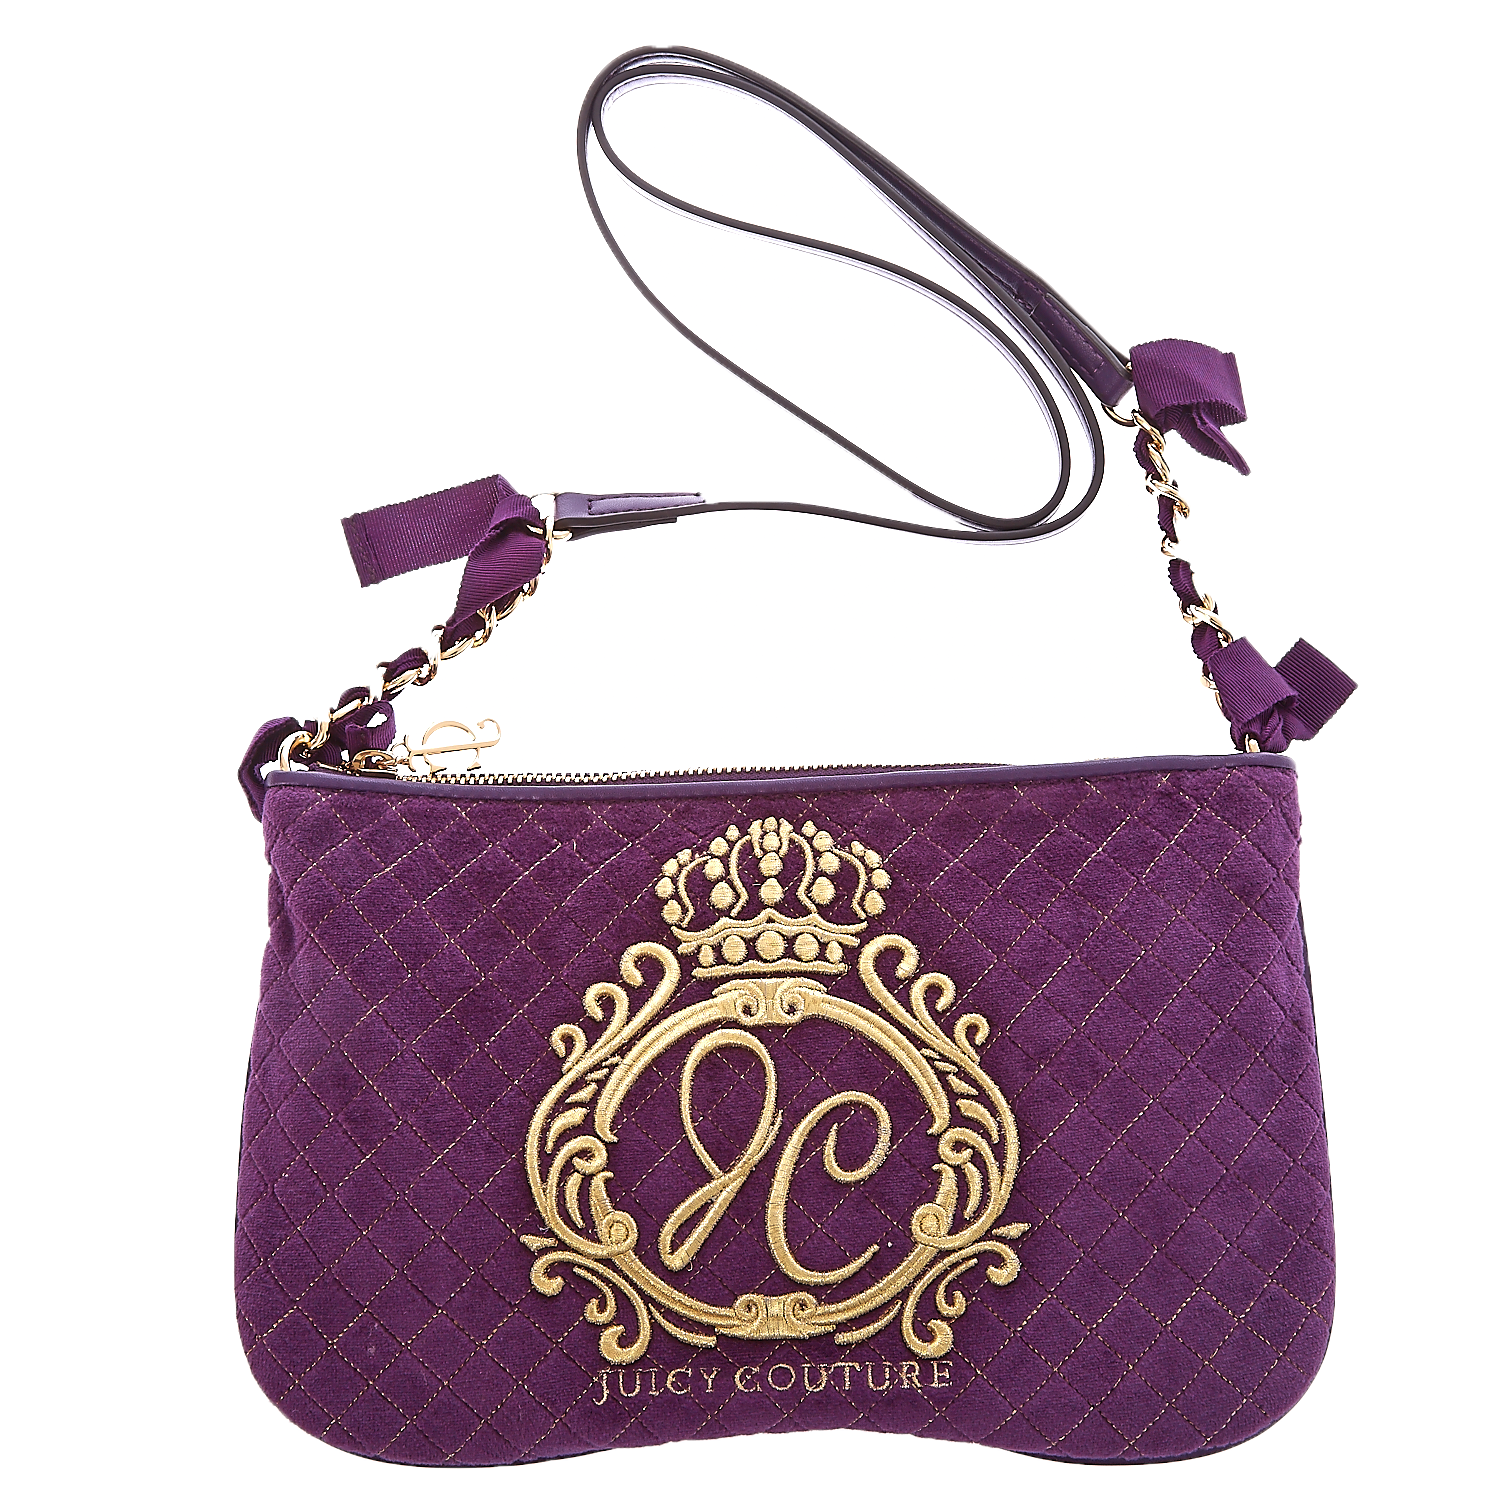 JUICY COUTURE - Τσαντάκι Juicy Couture μωβ γυναικεία αξεσουάρ τσάντες σακίδια ωμου